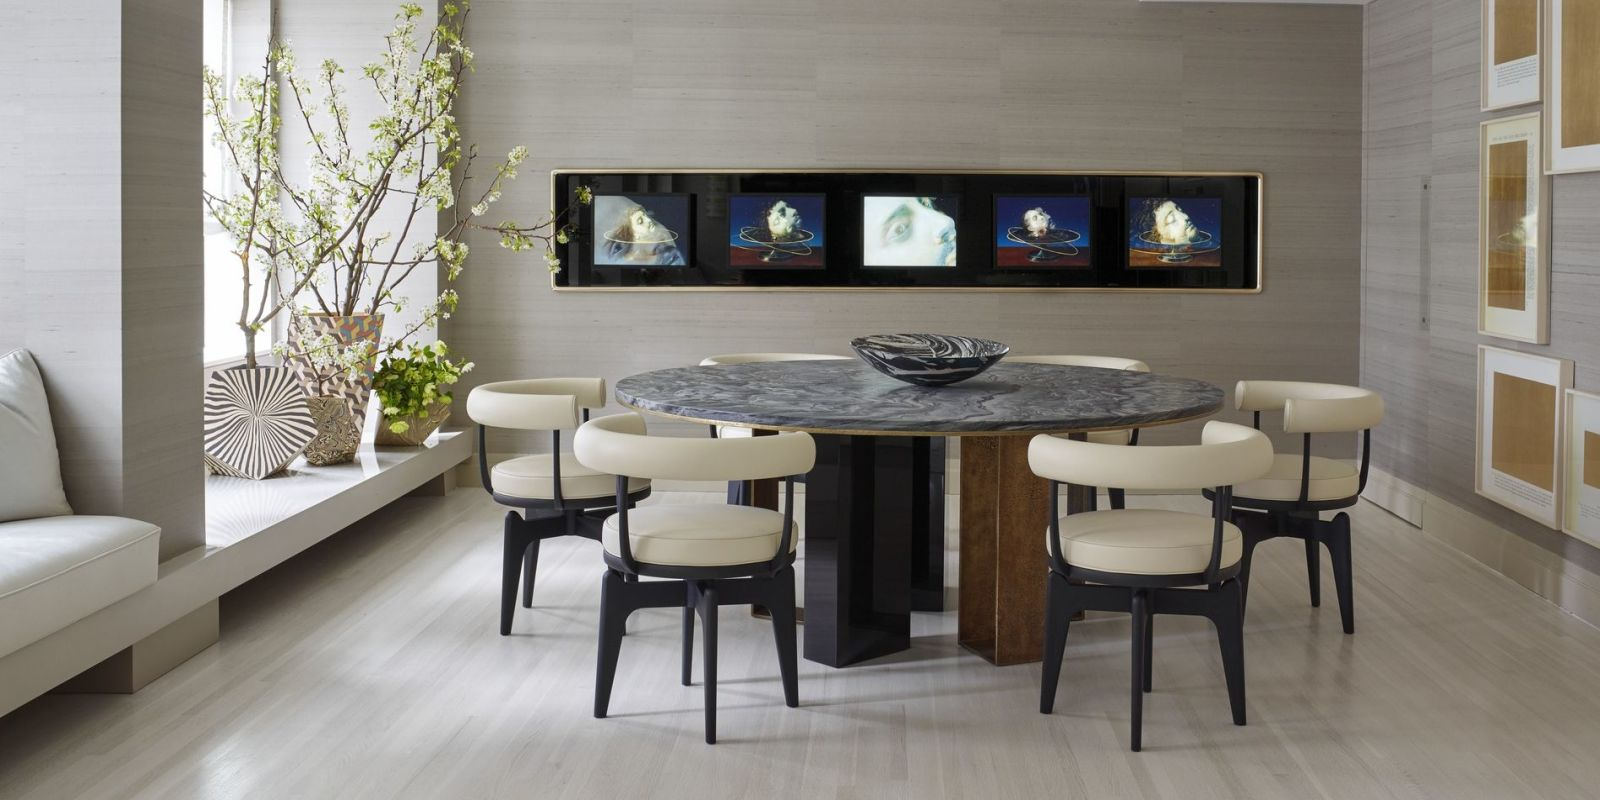 25 modern dining room decorating ideas contemporary for Dinner room design